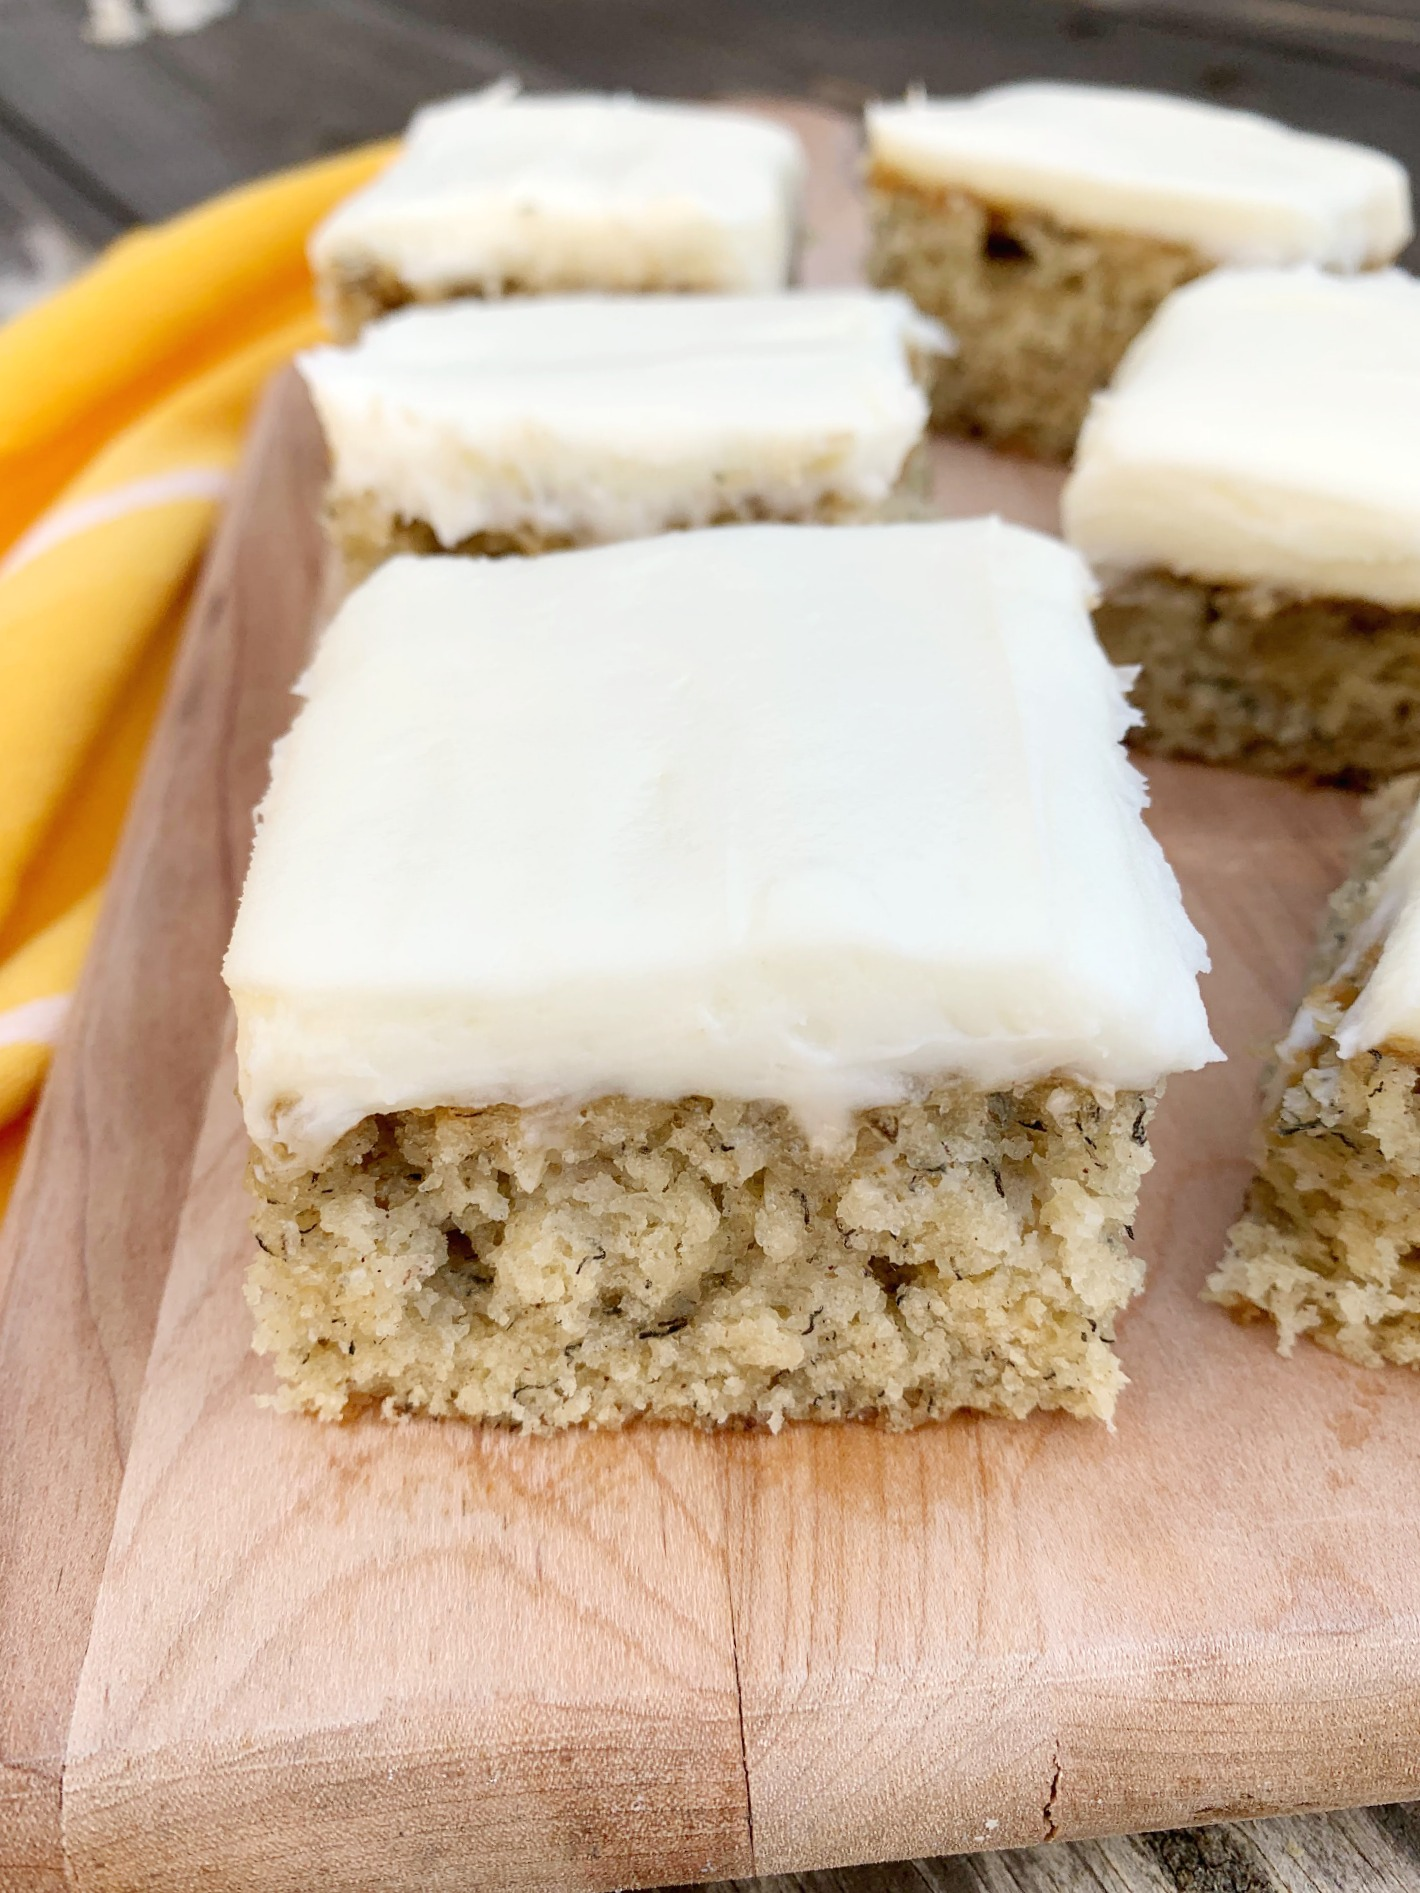 wooden cutting board with an upclose shot of a banana cake slice with cream cheese frosting